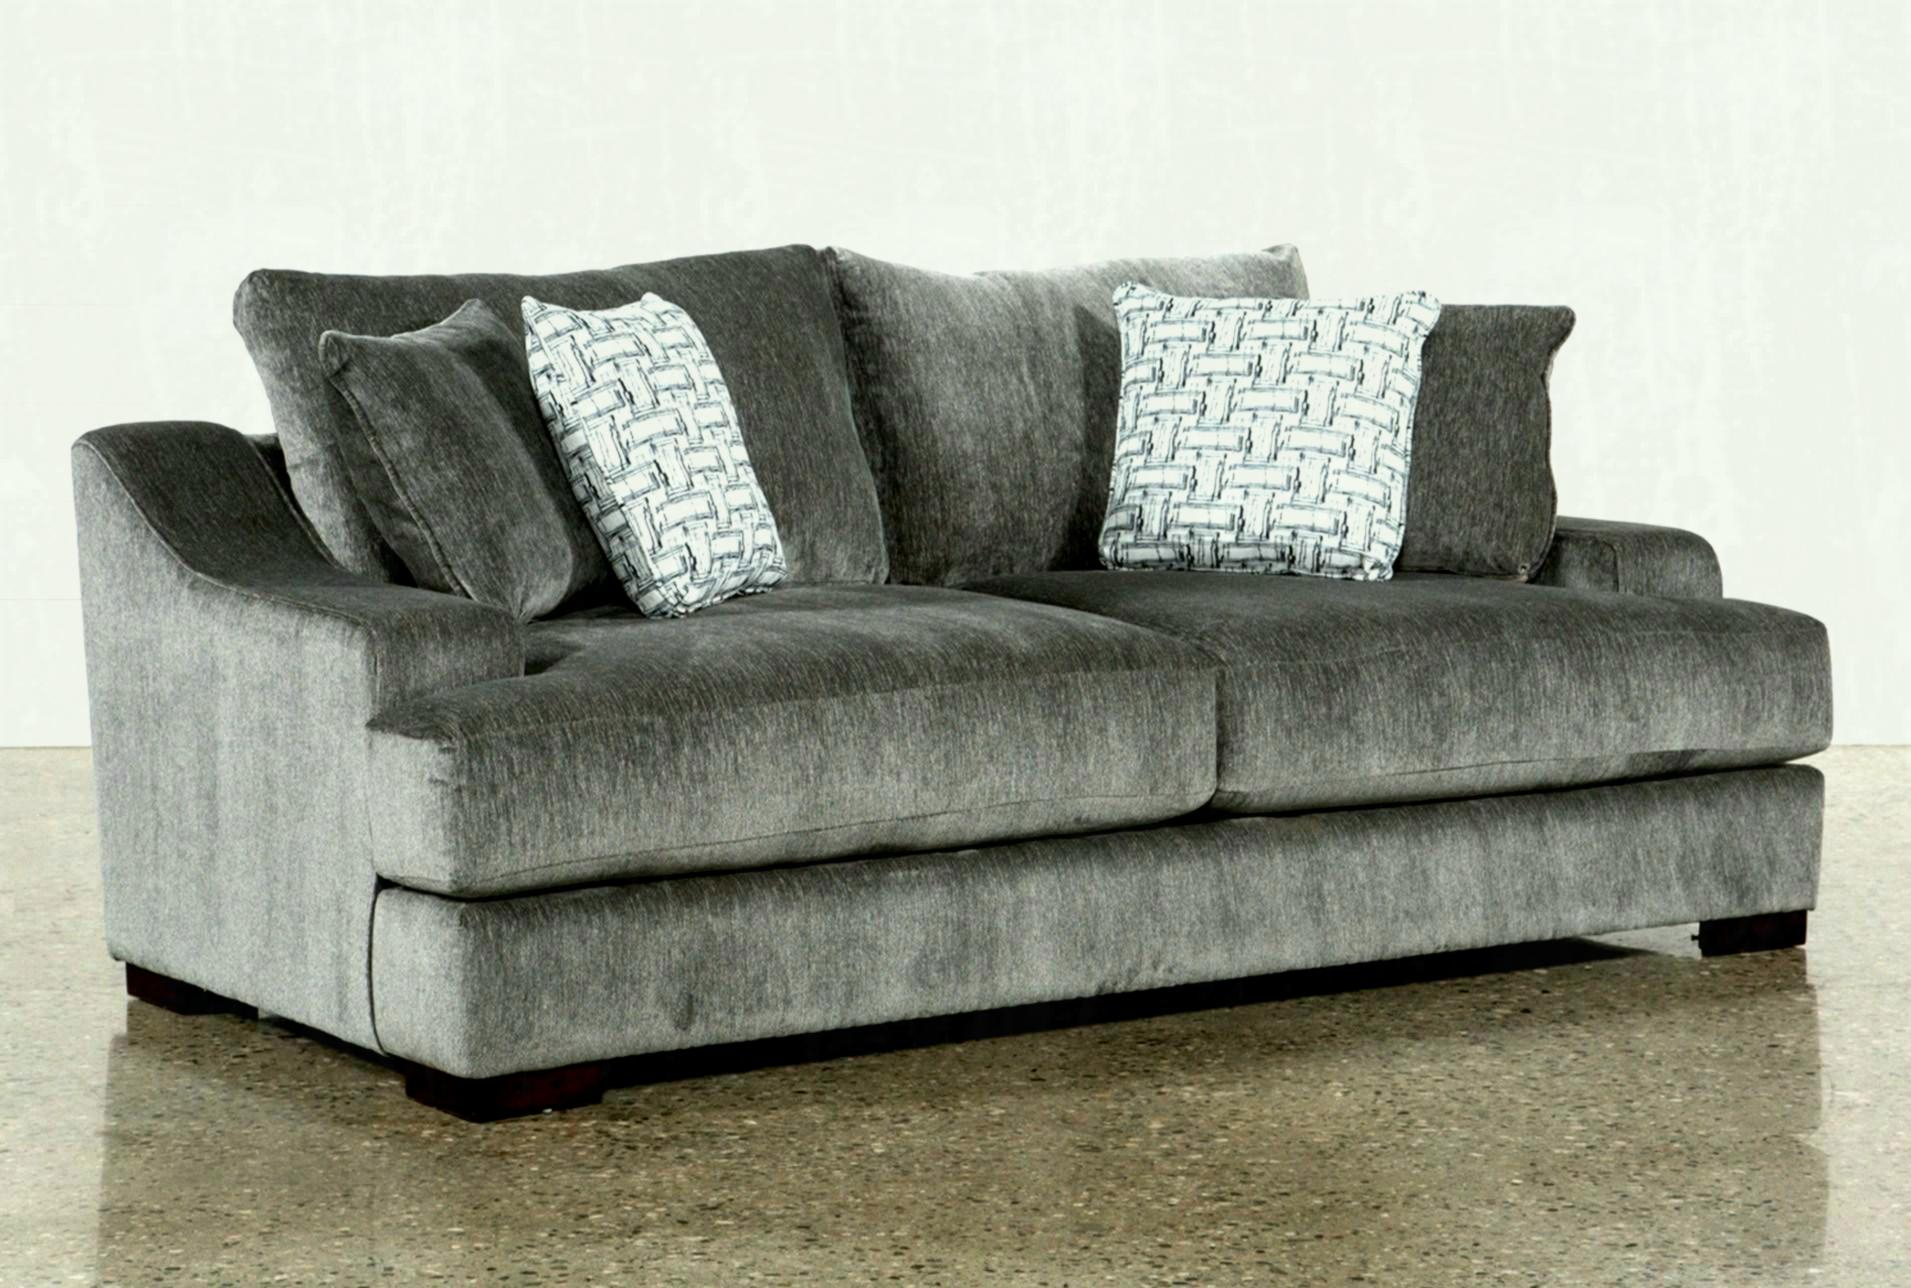 Mcdade Graphite Sofa Turdur Living Spaces - Garage Plans With Living pertaining to Mcdade Graphite Sofa Chairs